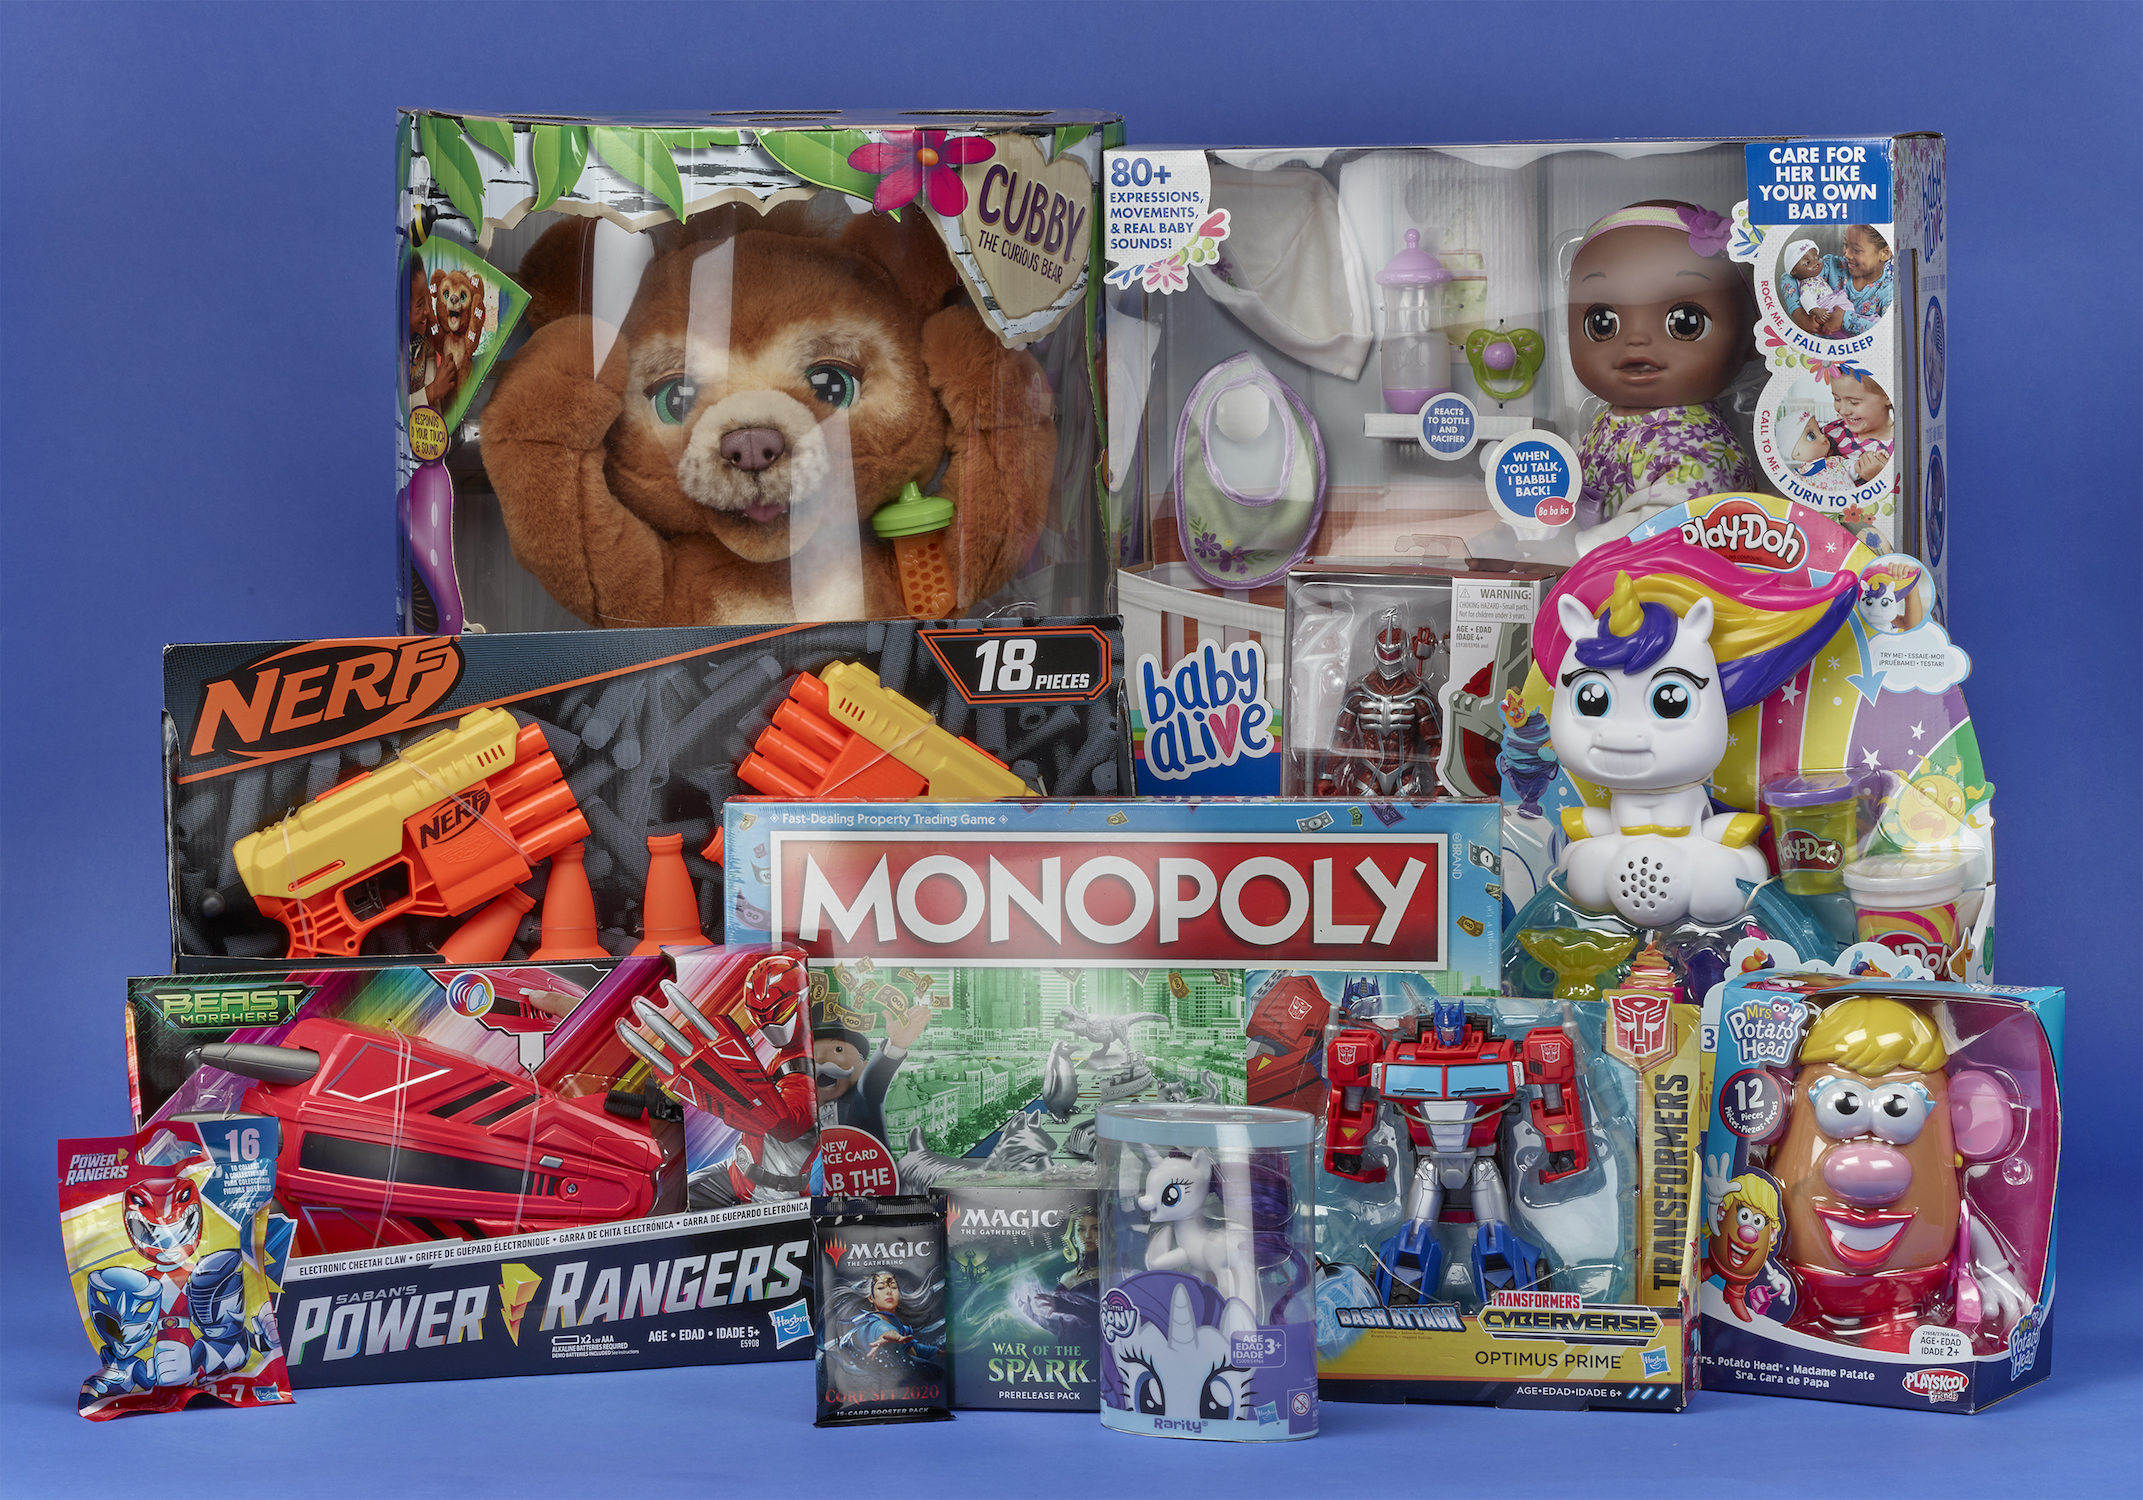 Hasbro Is Phasing Out Plastic Packaging for Kids Toys and Games by 2022